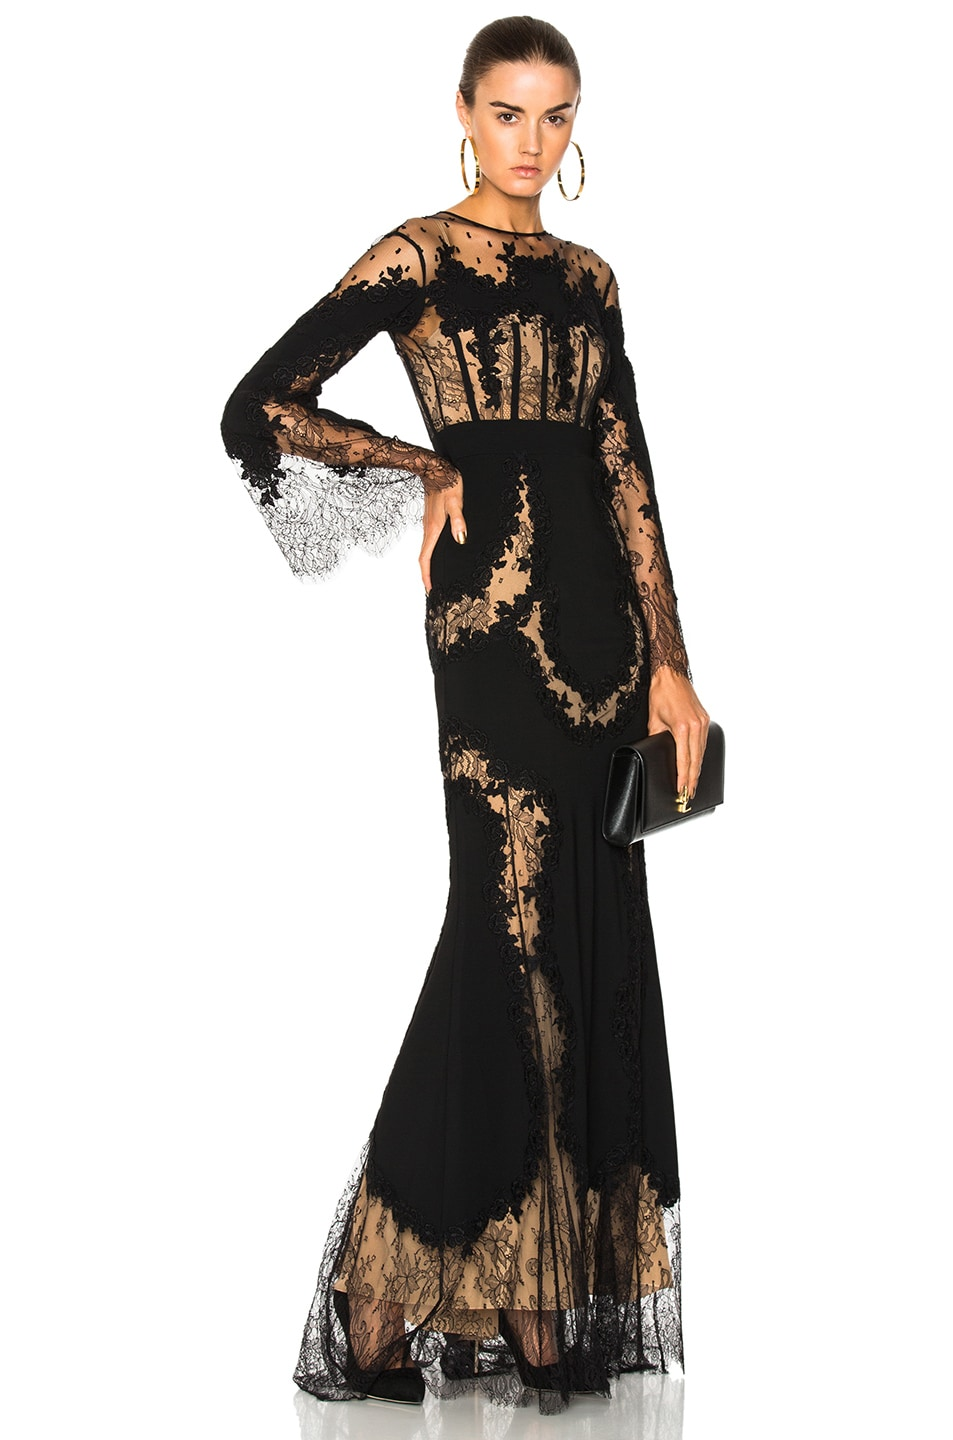 c8ce928b346 Image 1 of Zuhair Murad Lace Long Sleeve Gown in Black